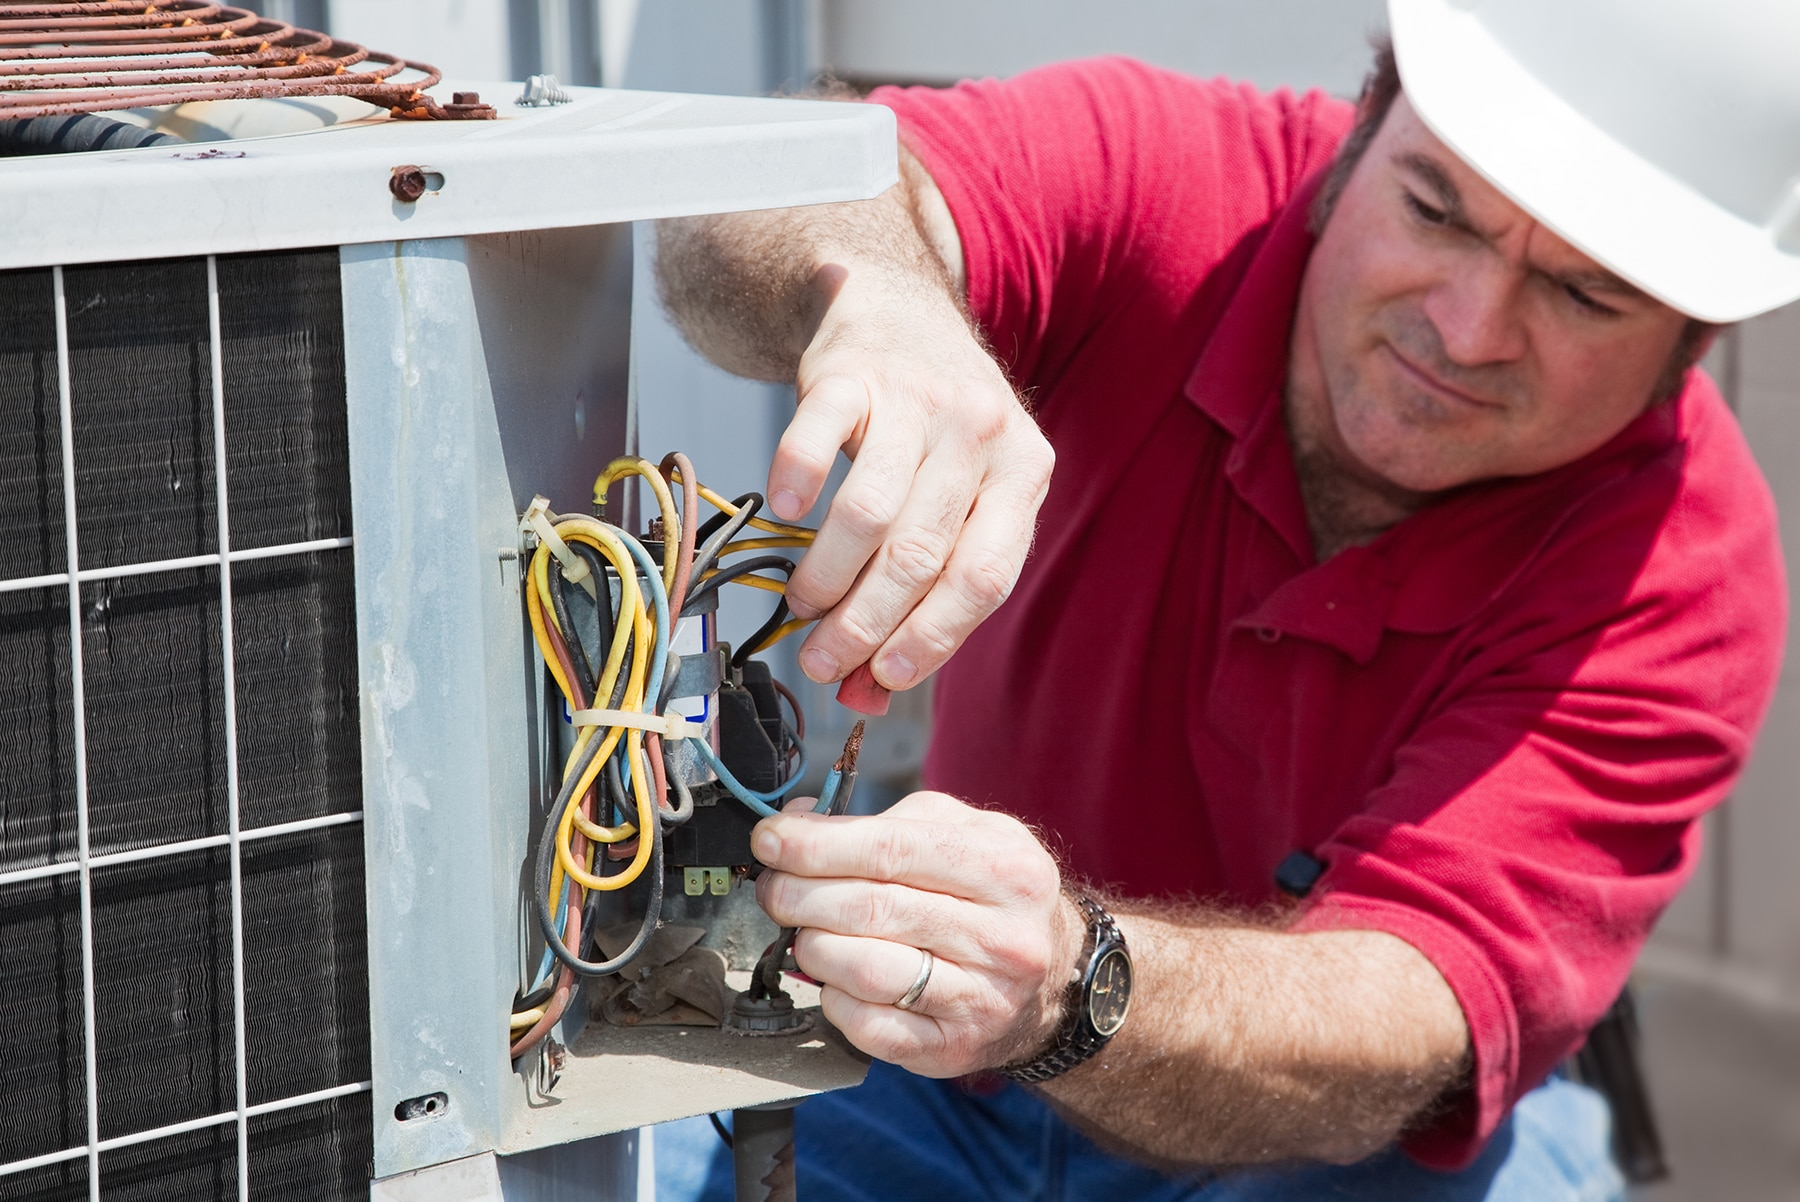 Furnace Repair in Albuquerque, New Mexico, NM, Rio Rancho, Santa Fe